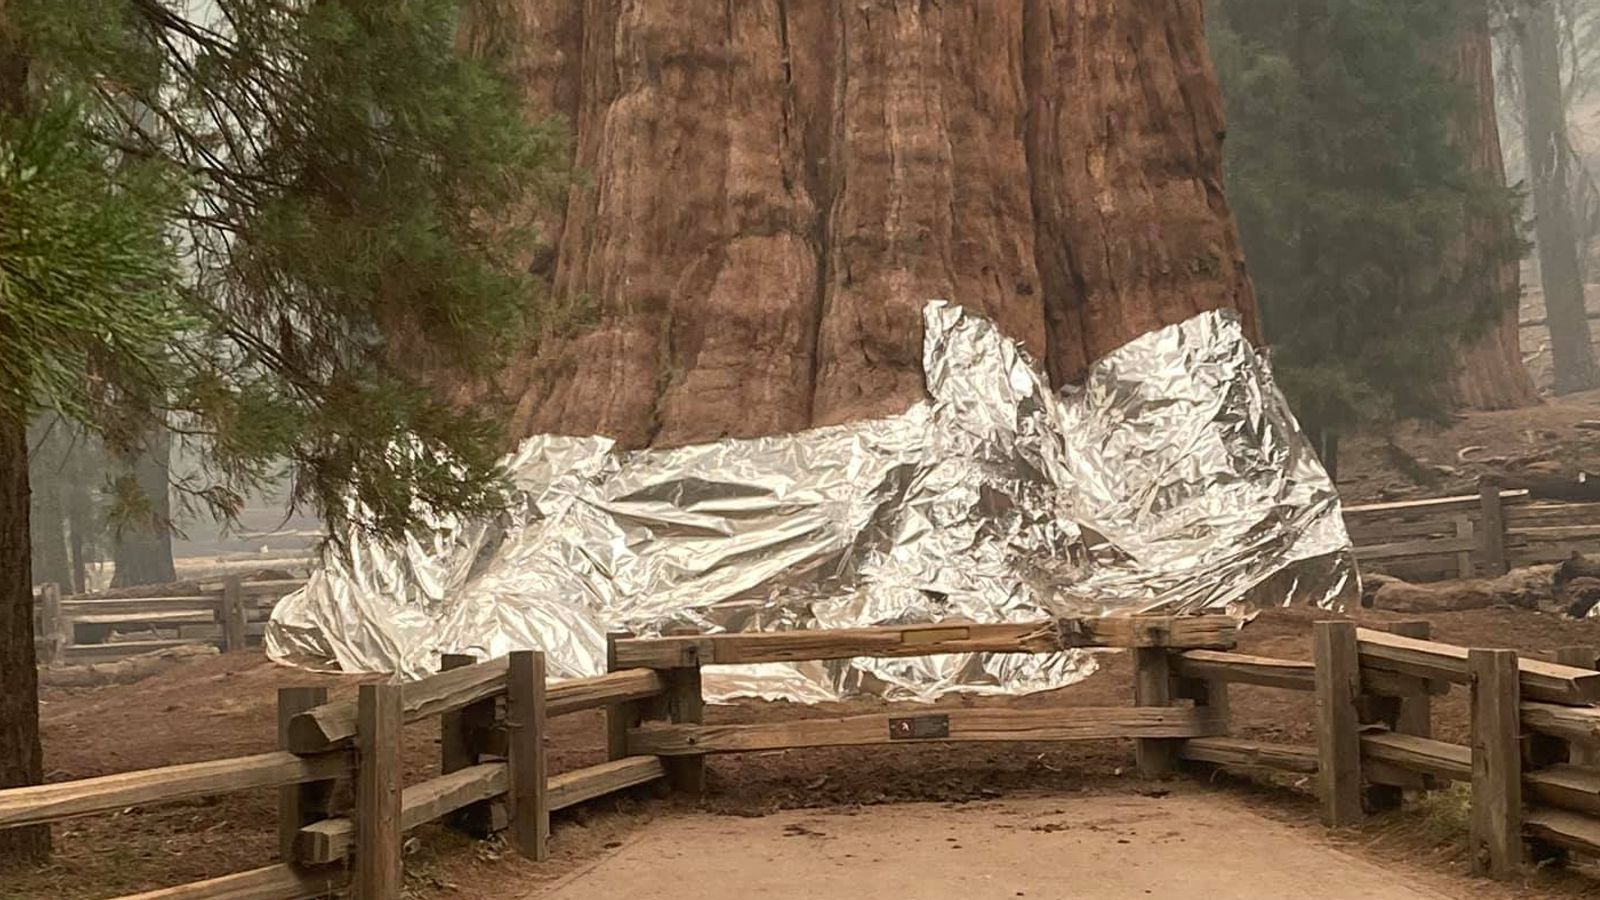 California: World's largest tree wrapped in flame-resistant blanket to save it from wildfires